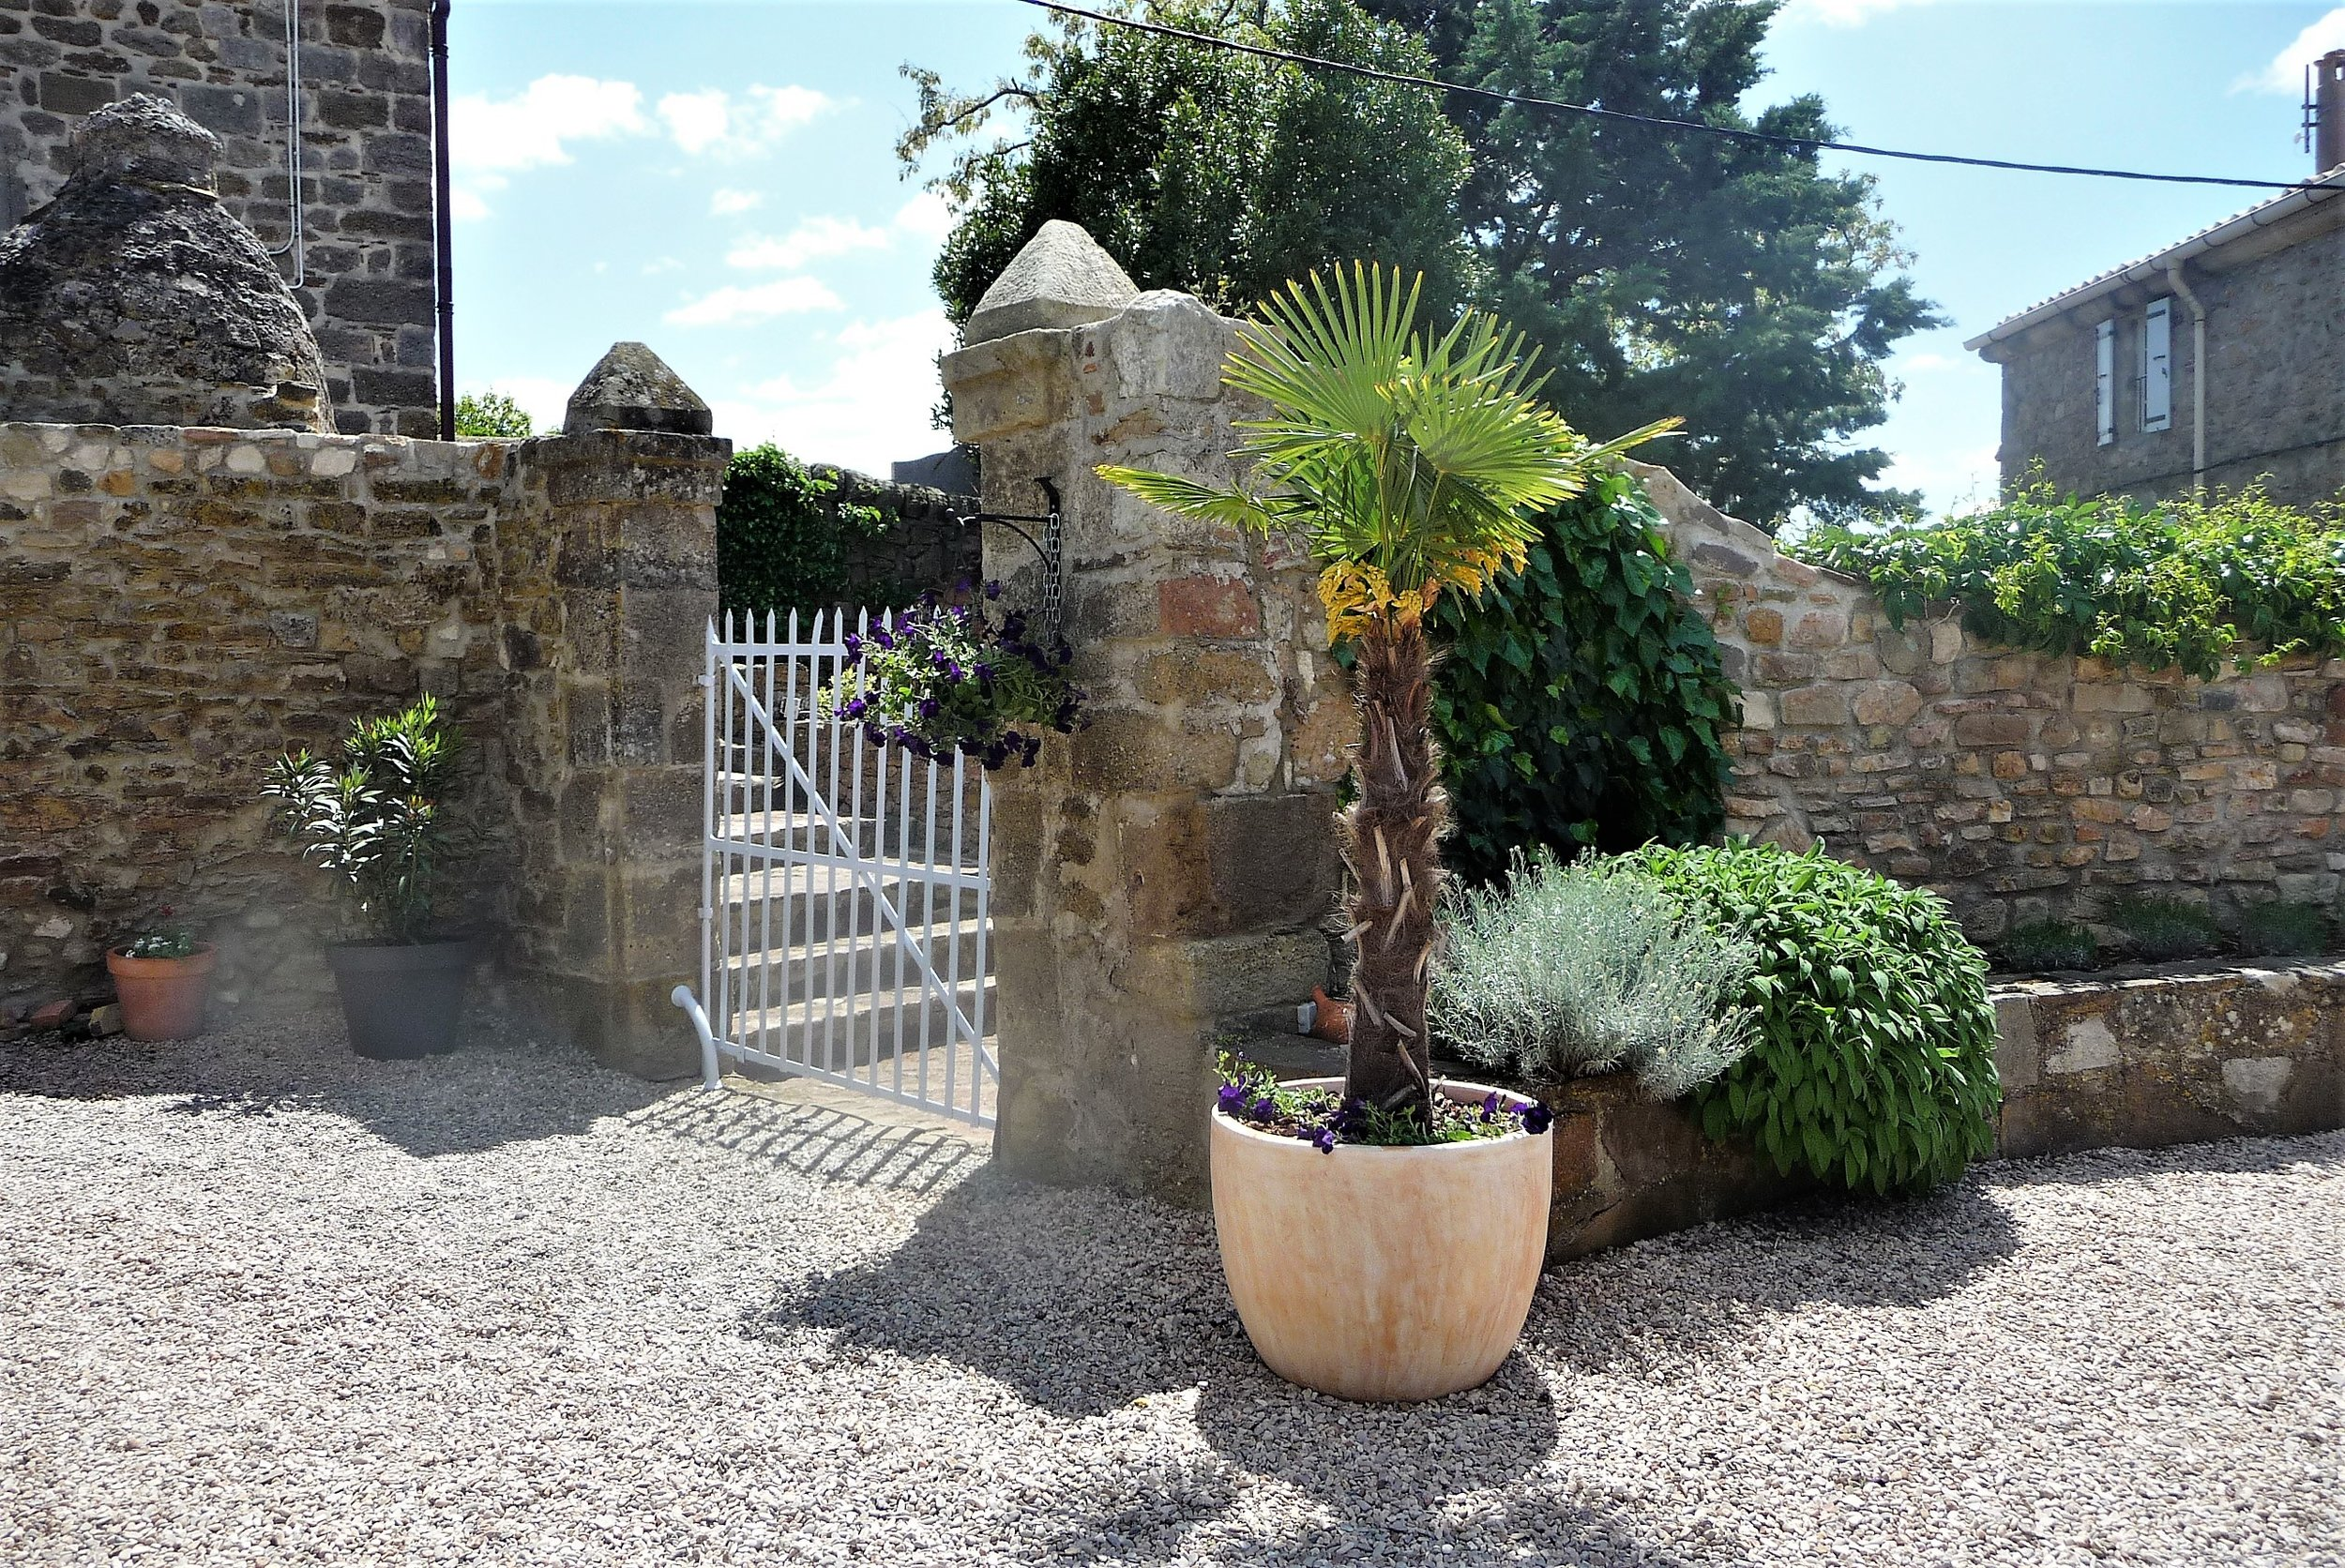 The walled courtyard garden.